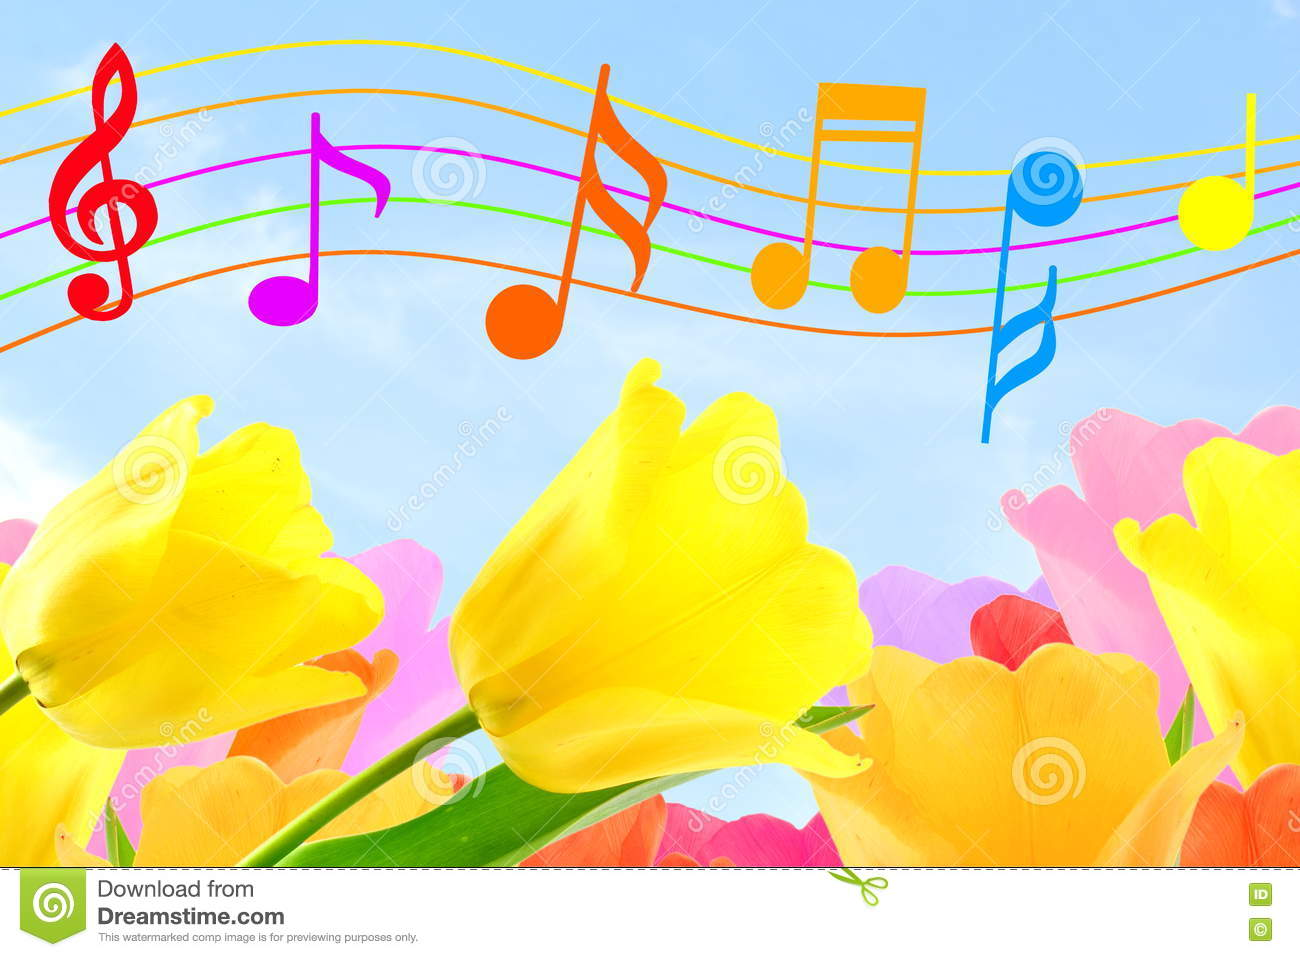 Colorful Music Notes Stock Images - Download 1,013 Photos